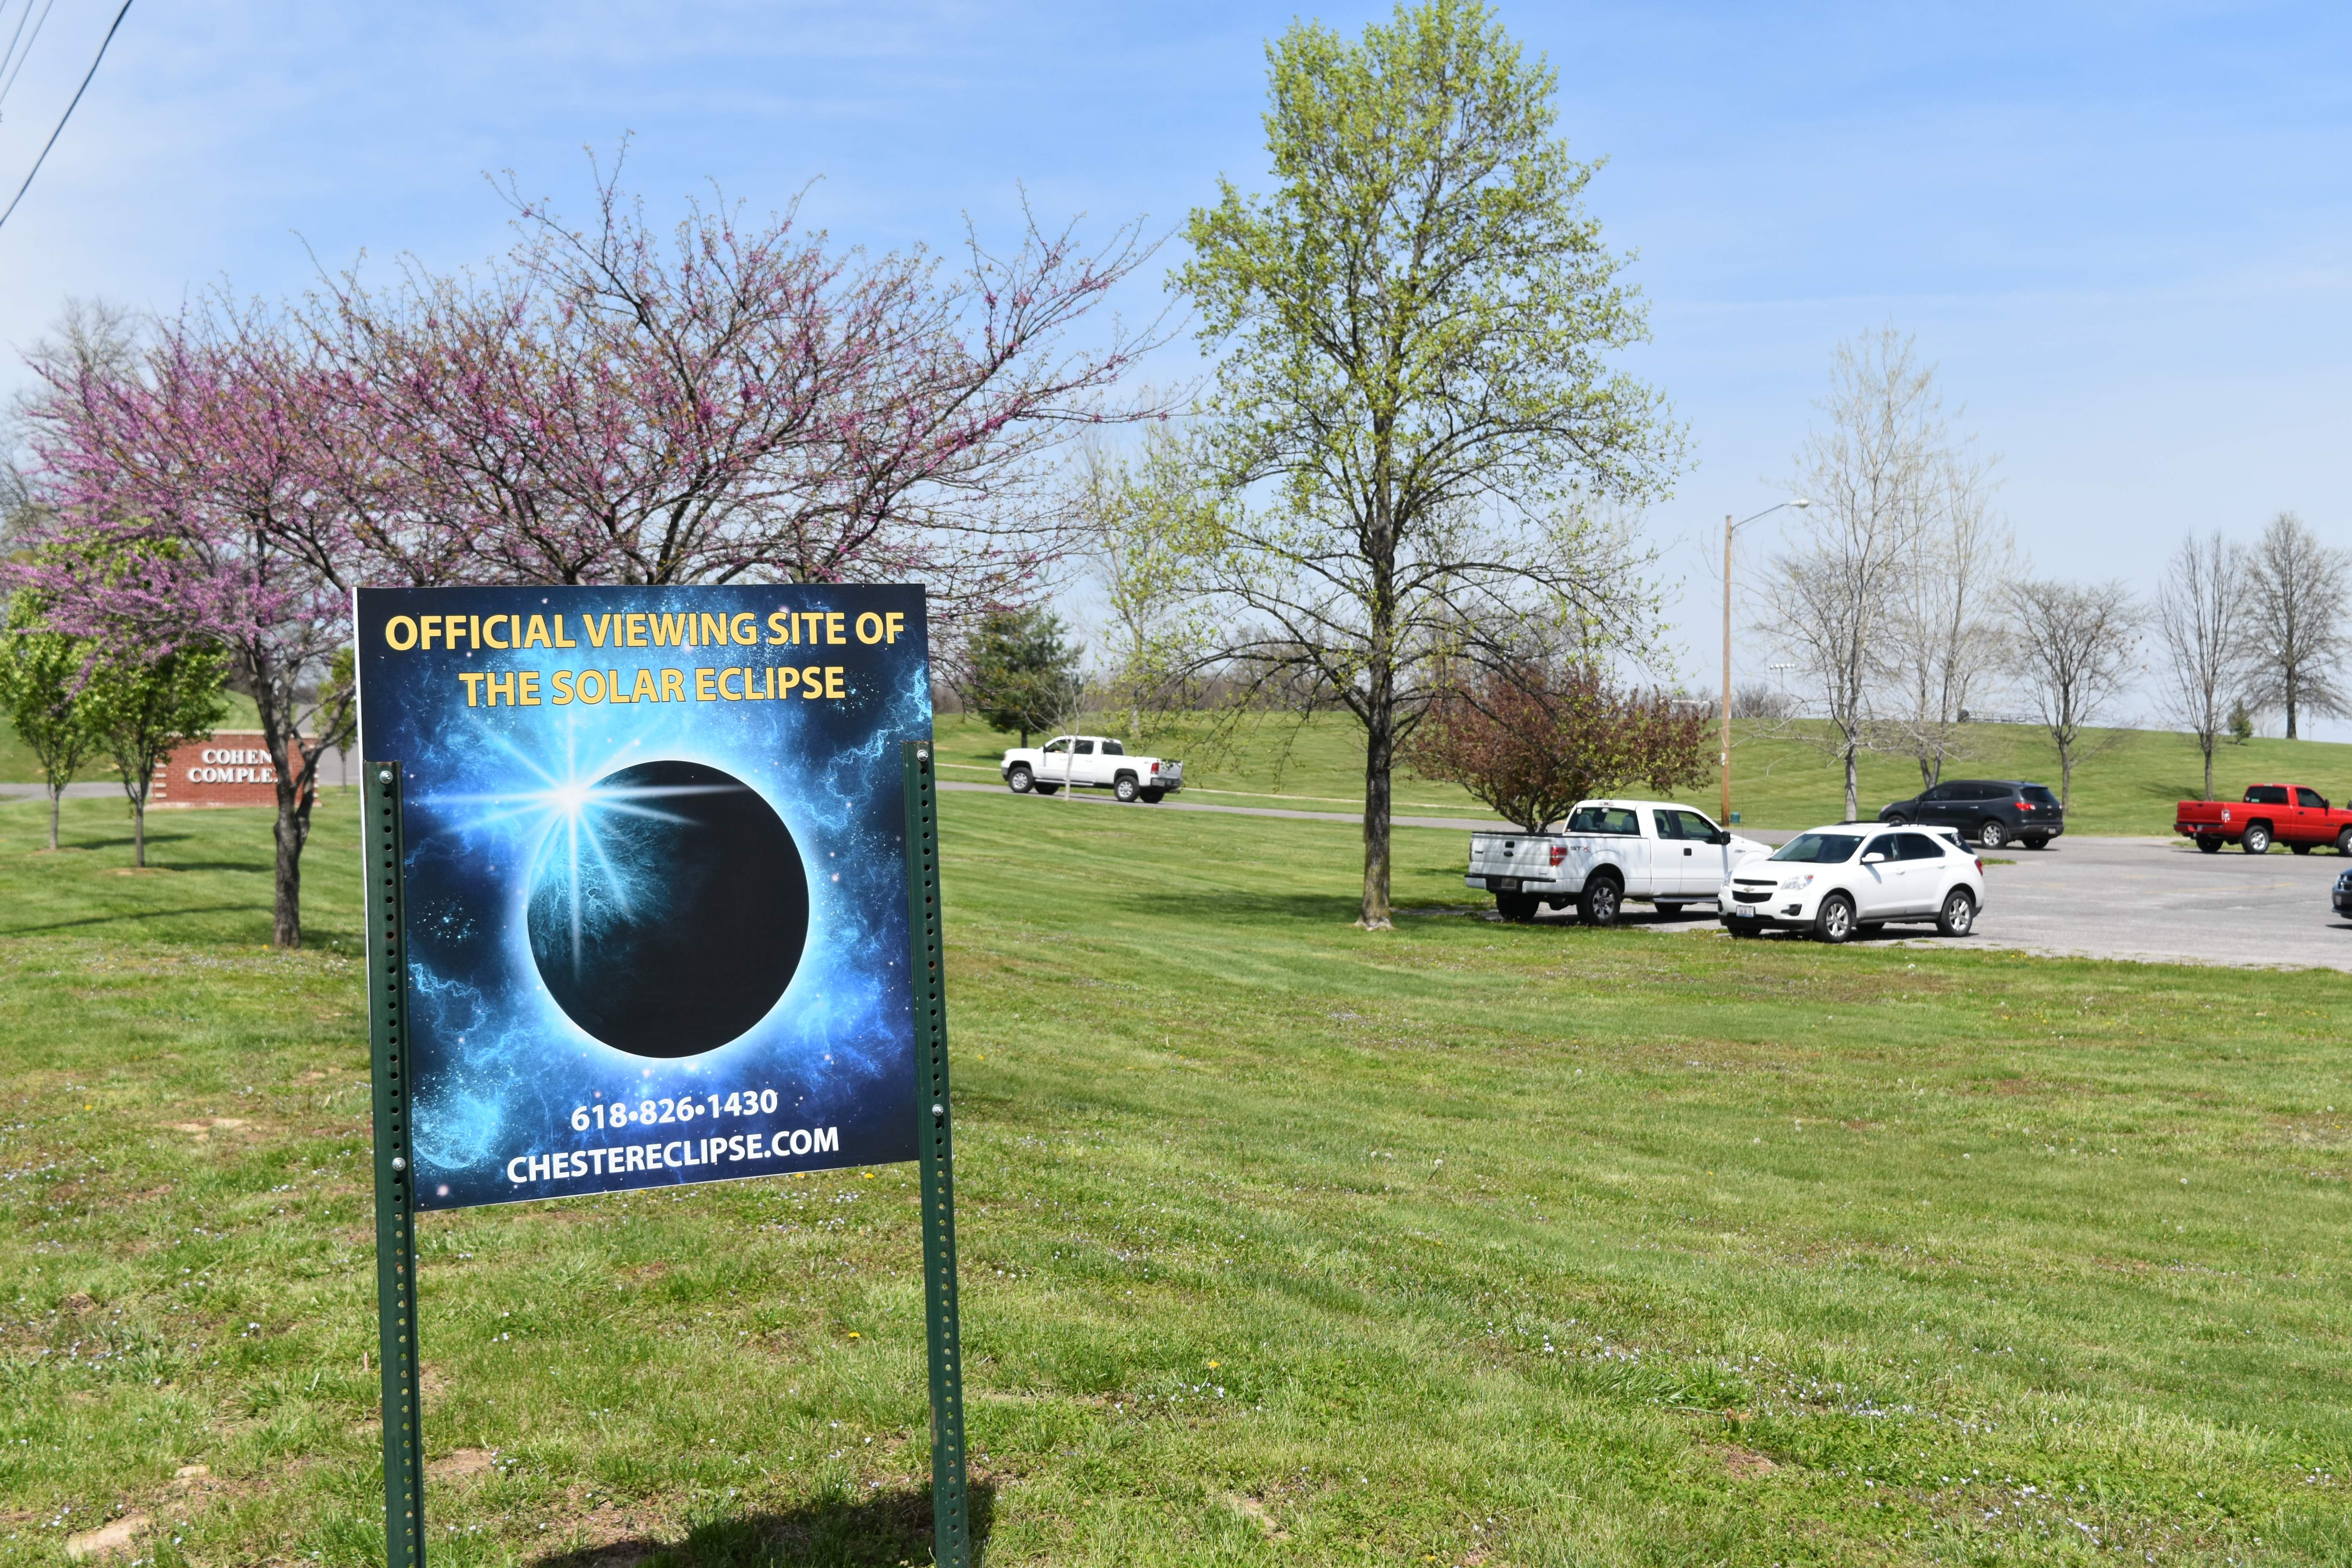 The Cohen Complex in Chester is one of the main viewing sites for Monday's solar eclipse.